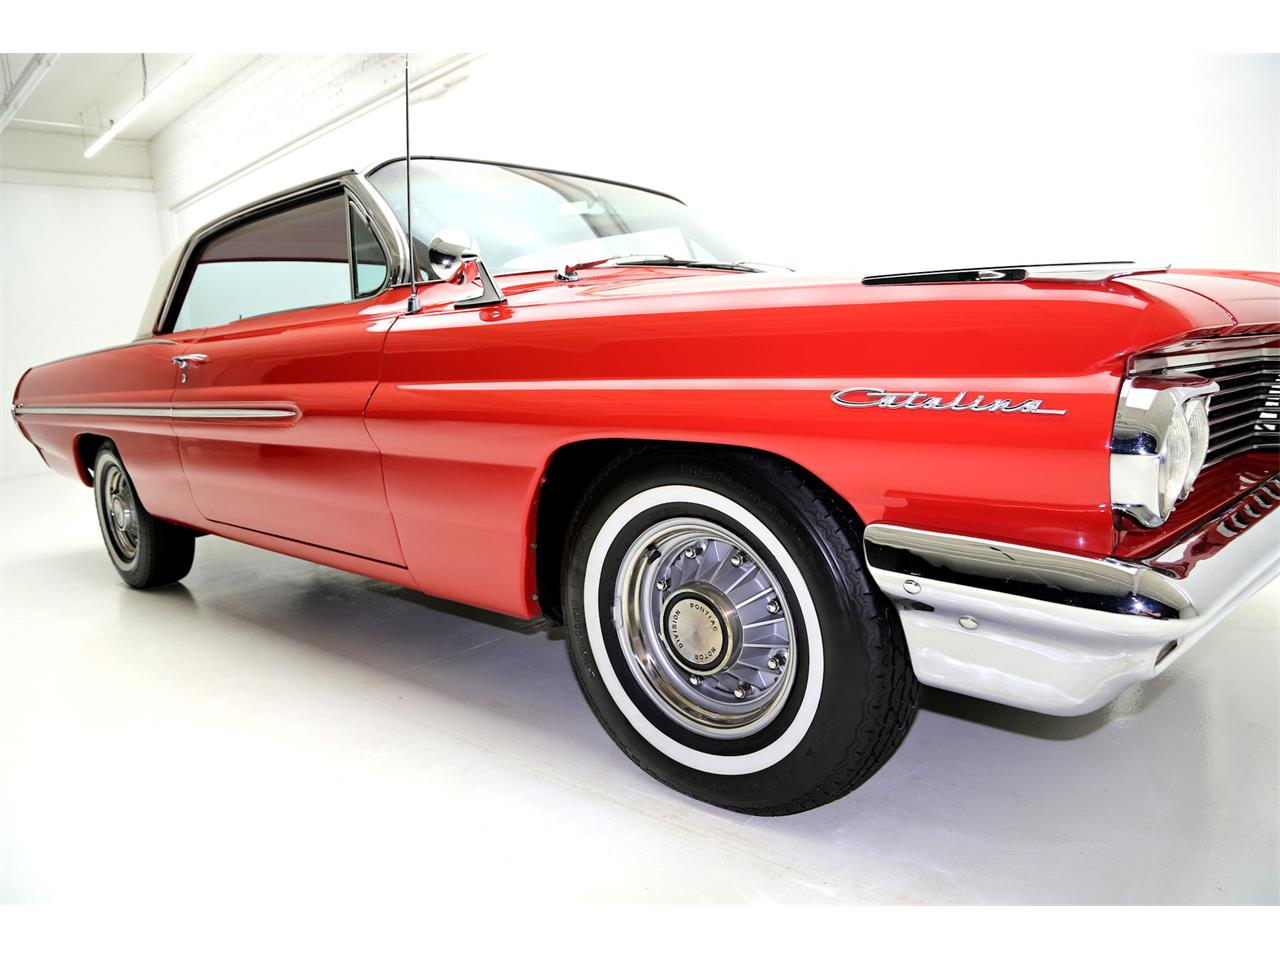 Large Picture of Classic '62 Pontiac Catalina located in Iowa - $27,900.00 - JRF9